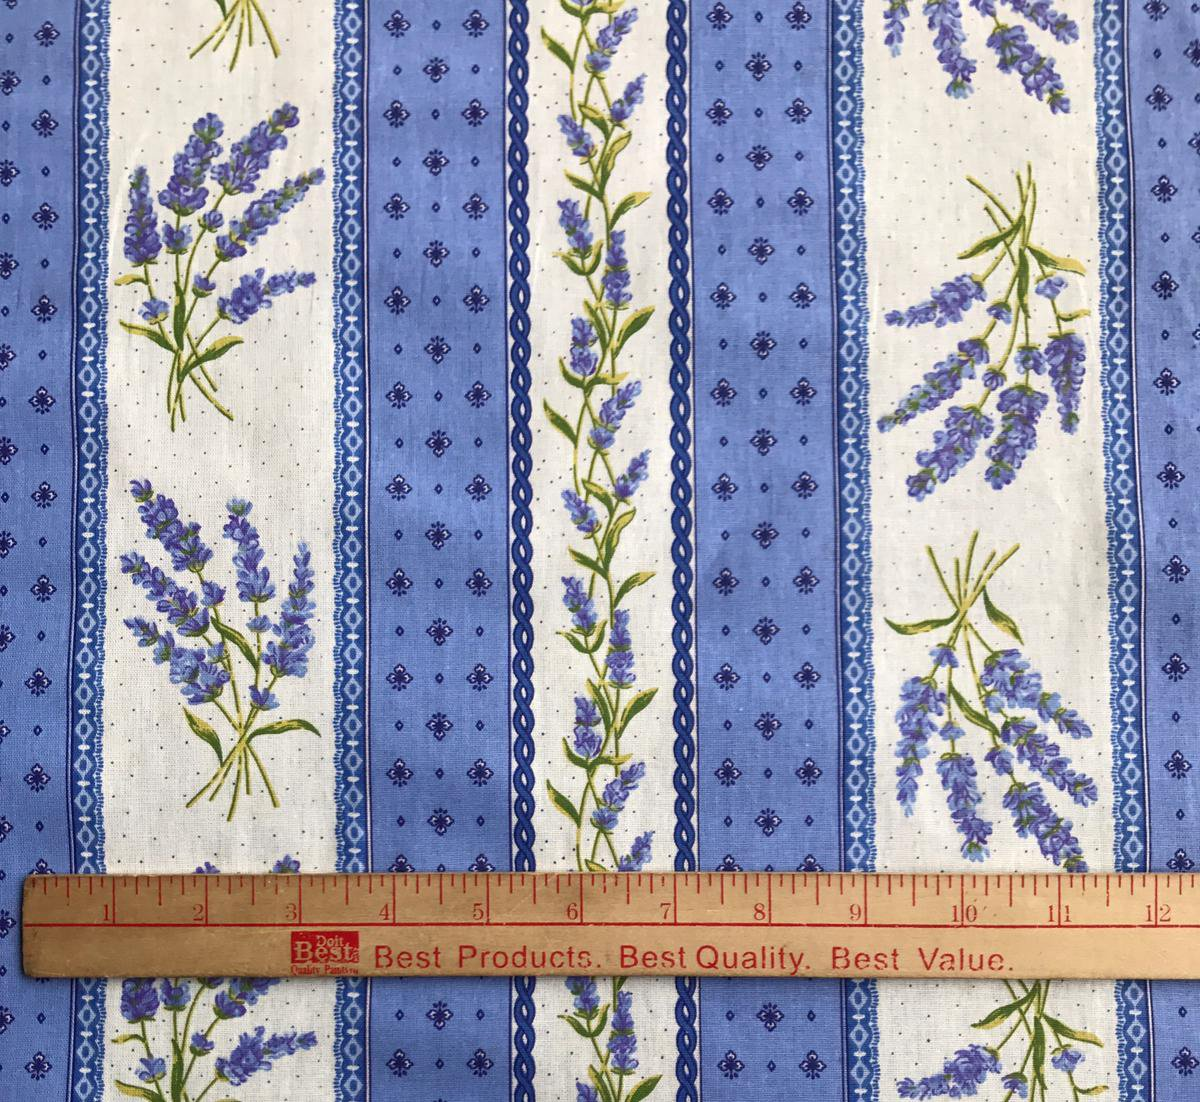 Lavender blue border fabric #667